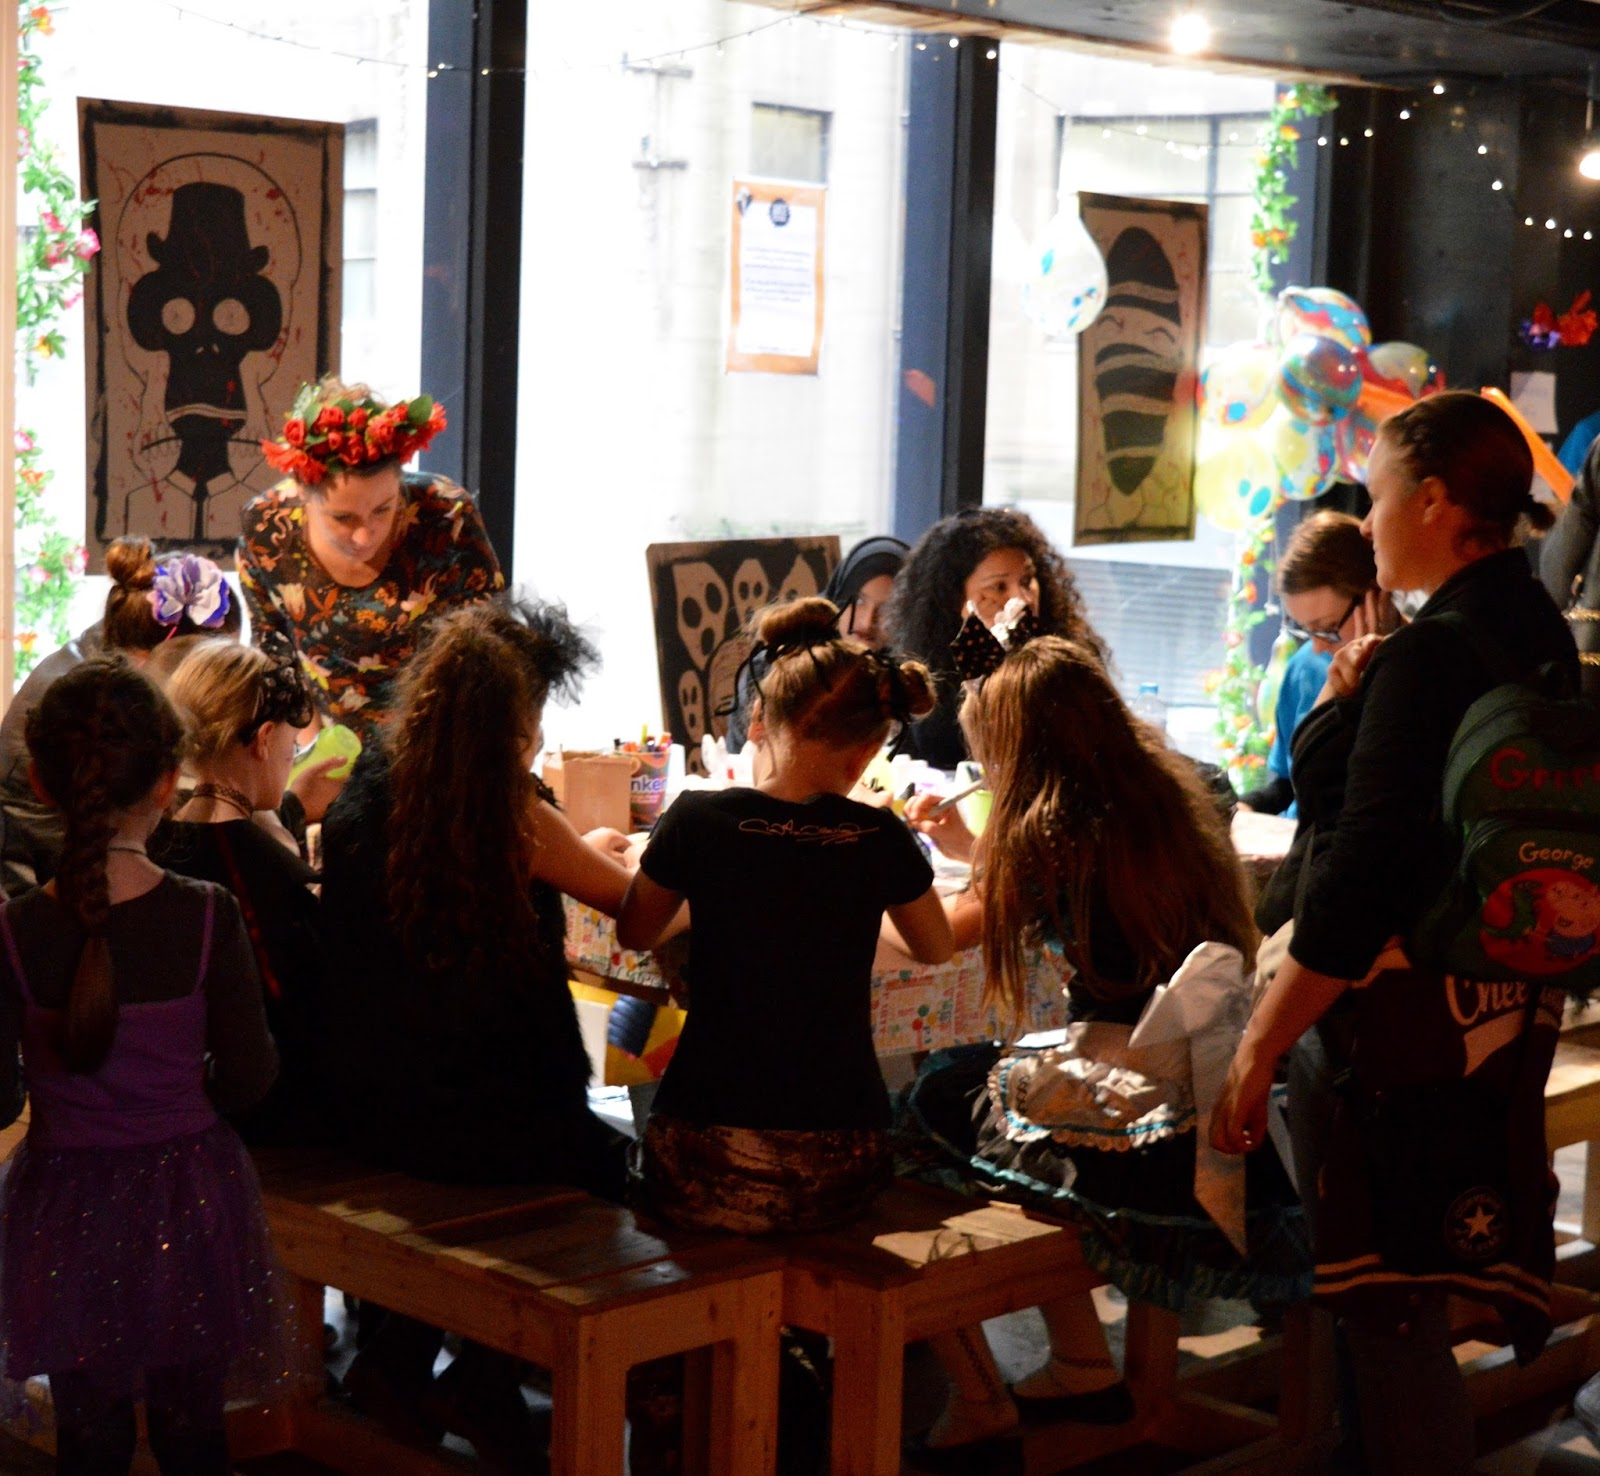 Juice Festival | Day of the Dead Family Celebrations at ¡Vamos! Social, Newcastle  - kids craft area